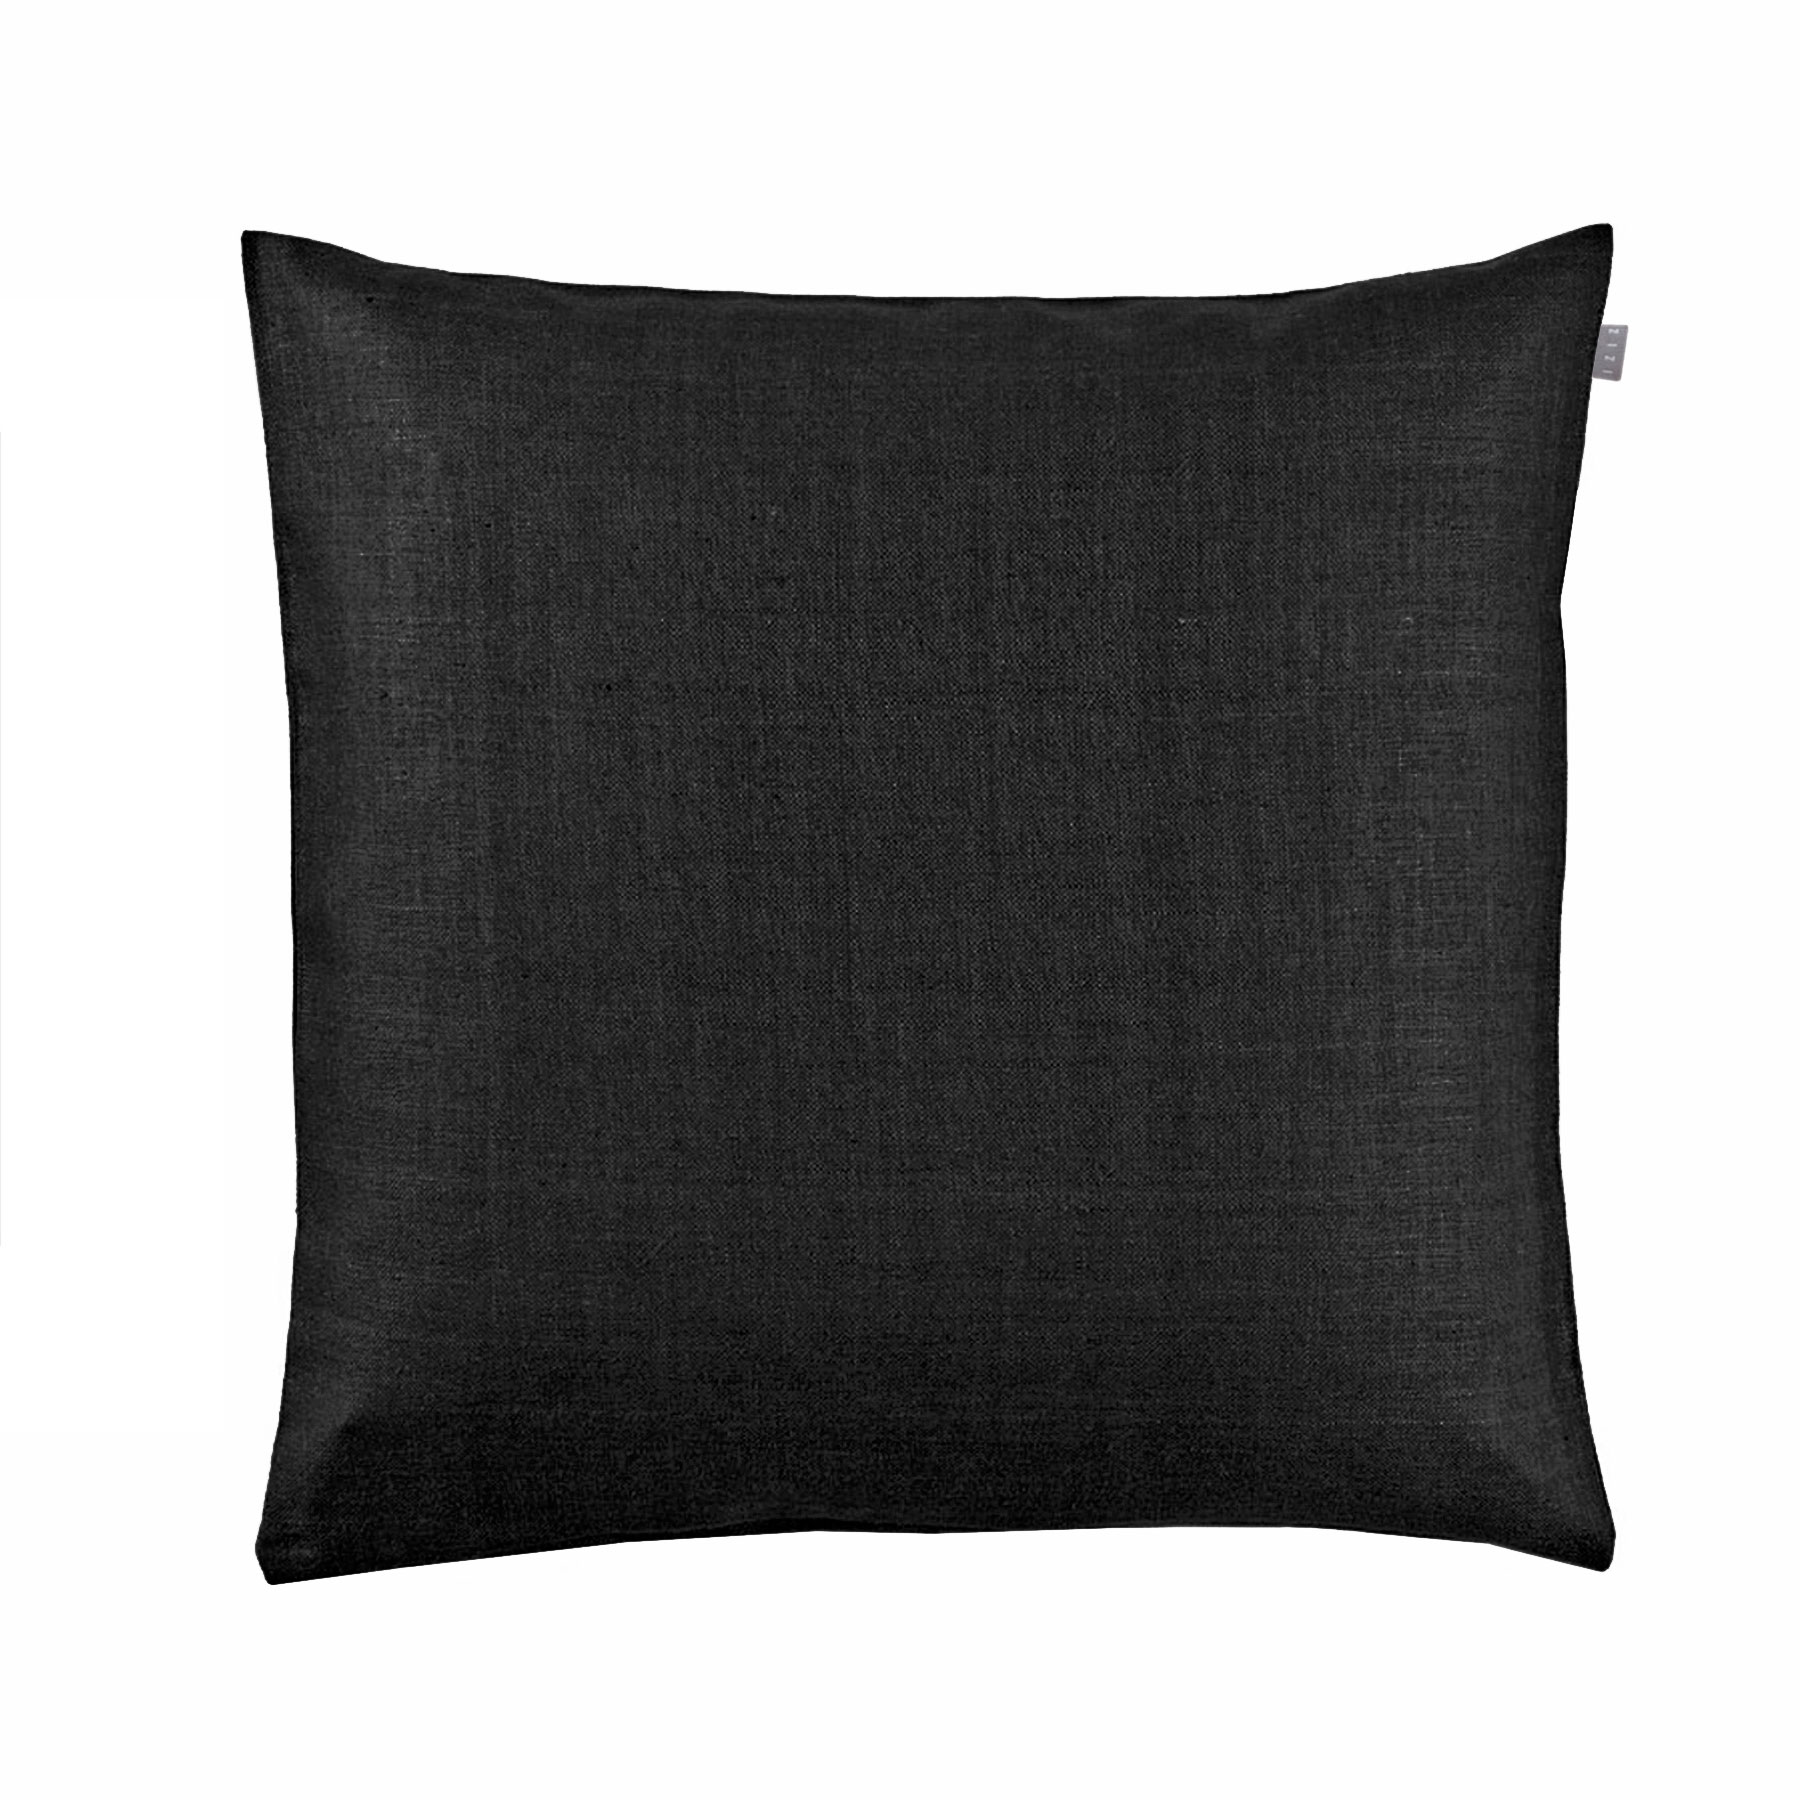 CUSHION COVER PLAIN <br />black